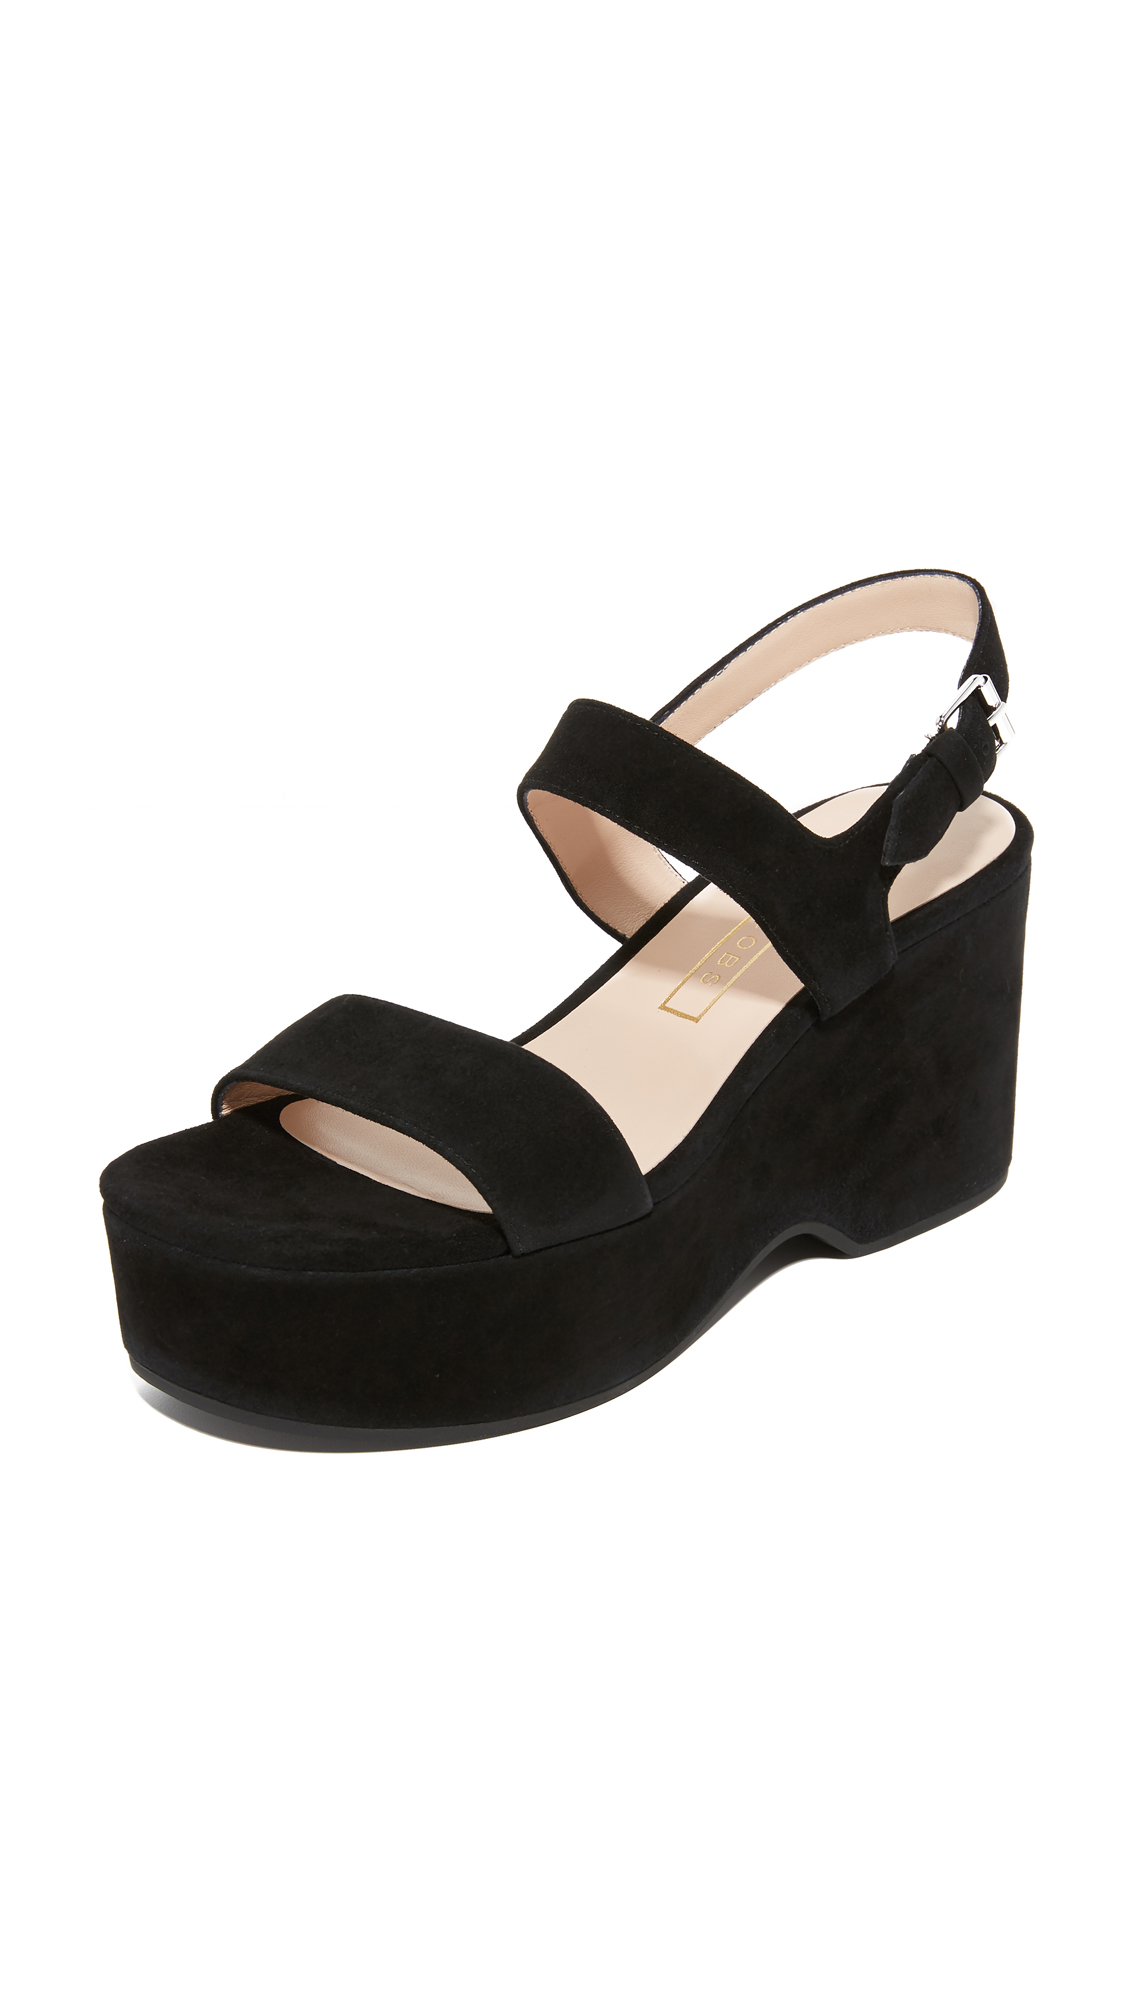 marc jacobs female marc jacobs lily wedge sandals black